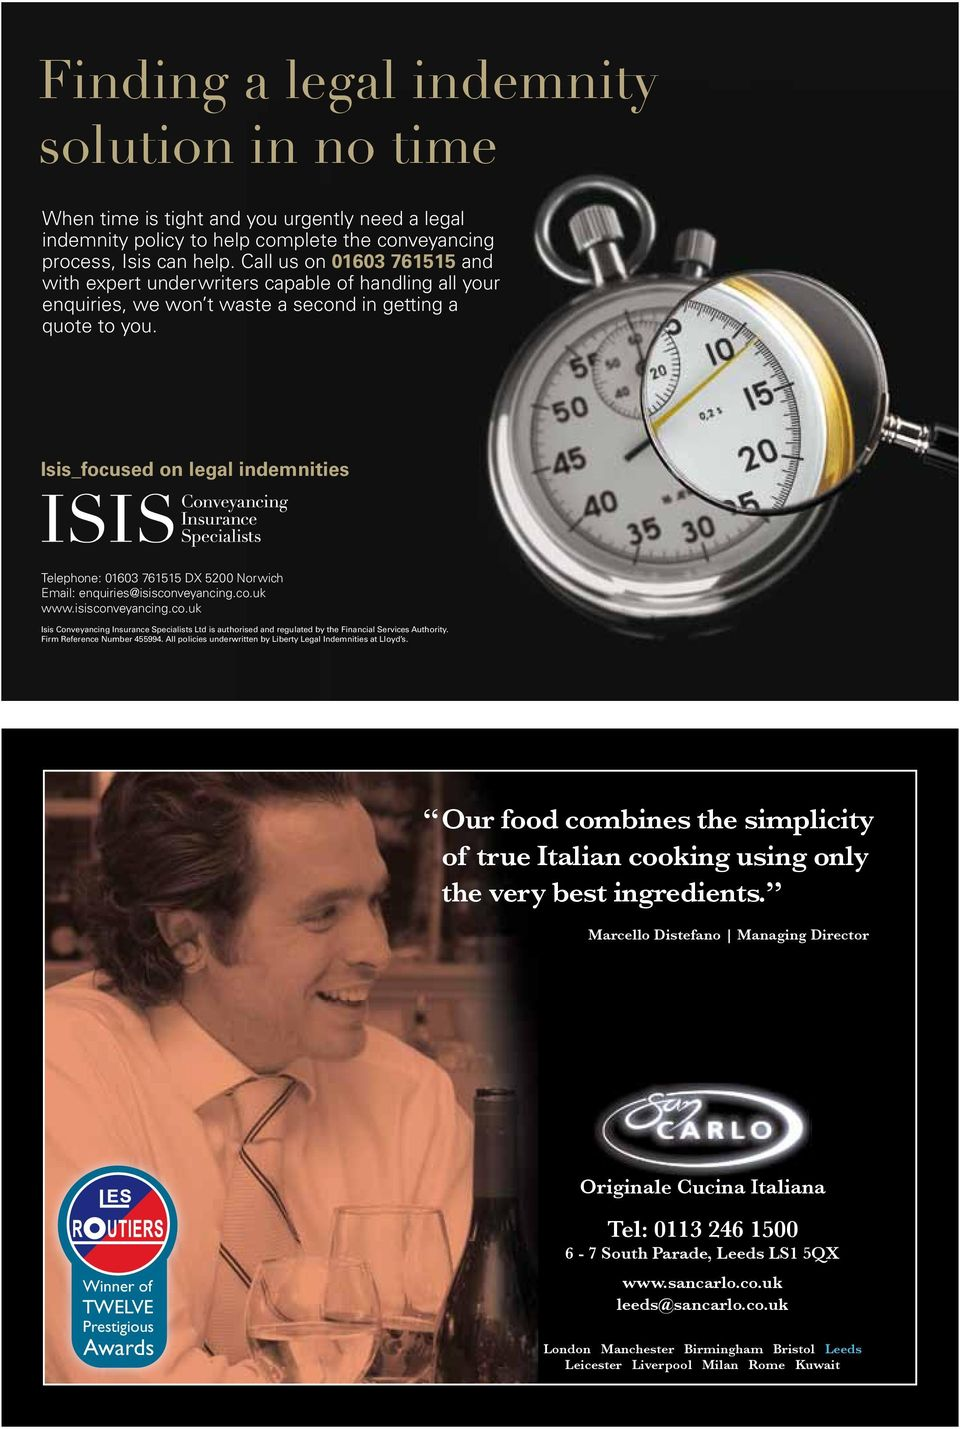 Isis_focused on legal indemnities Telephone: 01603 761515 DX 5200 Norwich Email: enquiries@isiscon